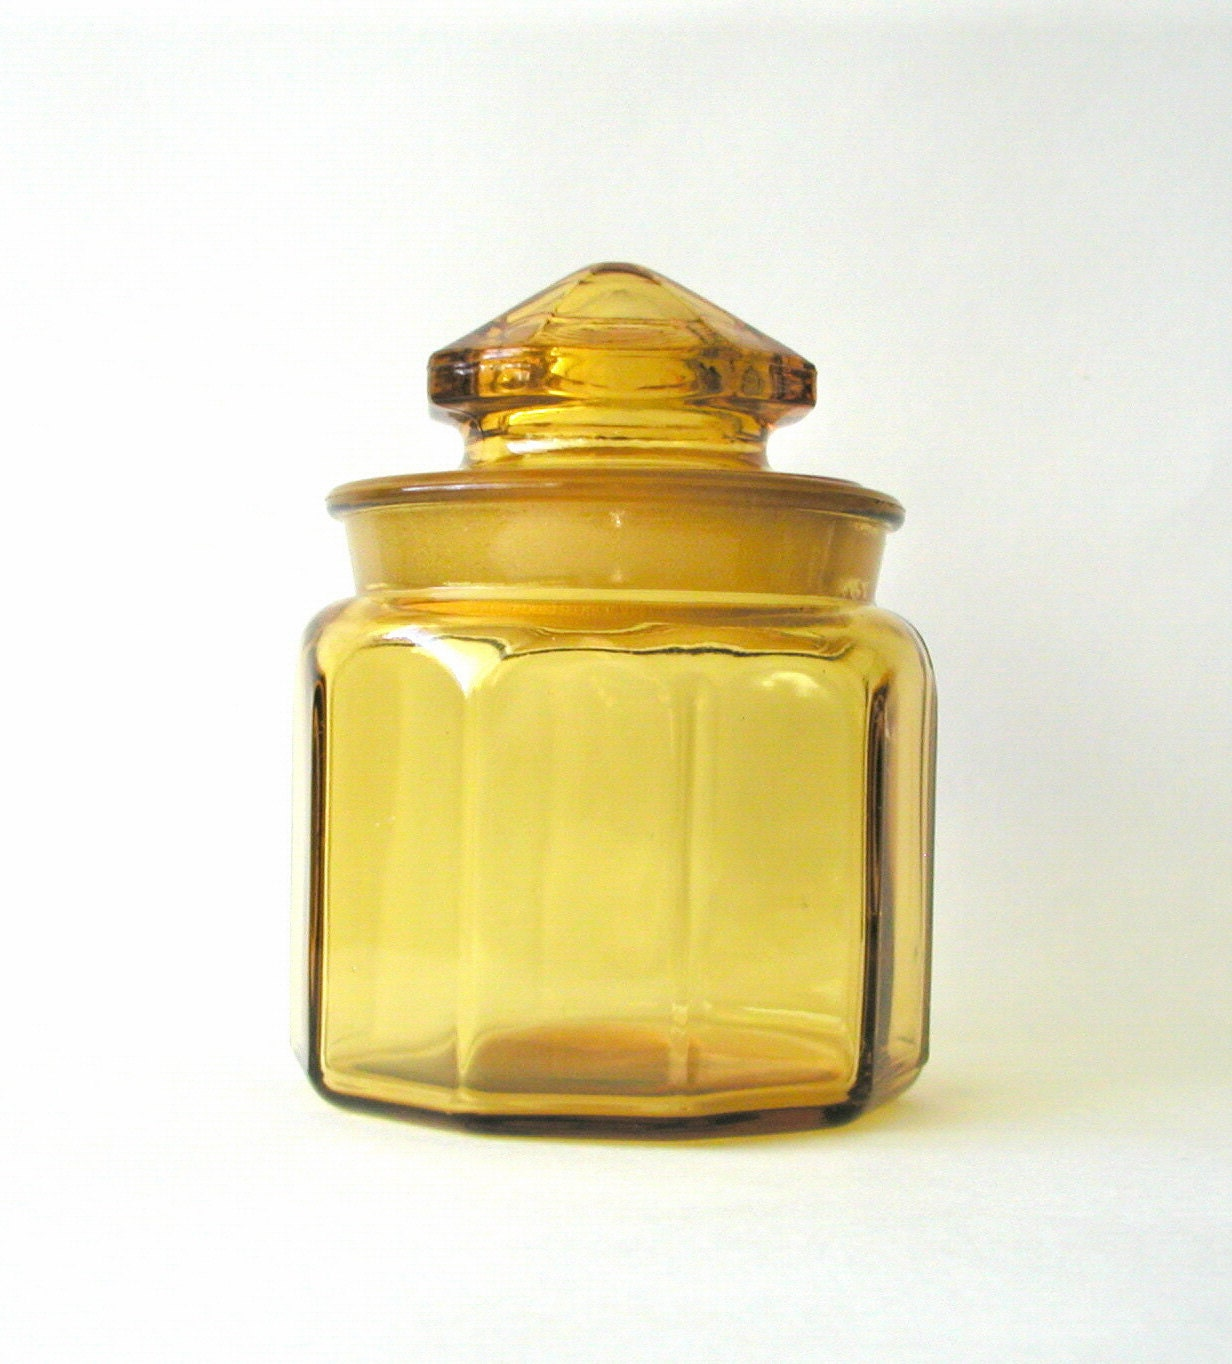 SALE Amber Glass Apothecary Jar Container Vintage Home Decor